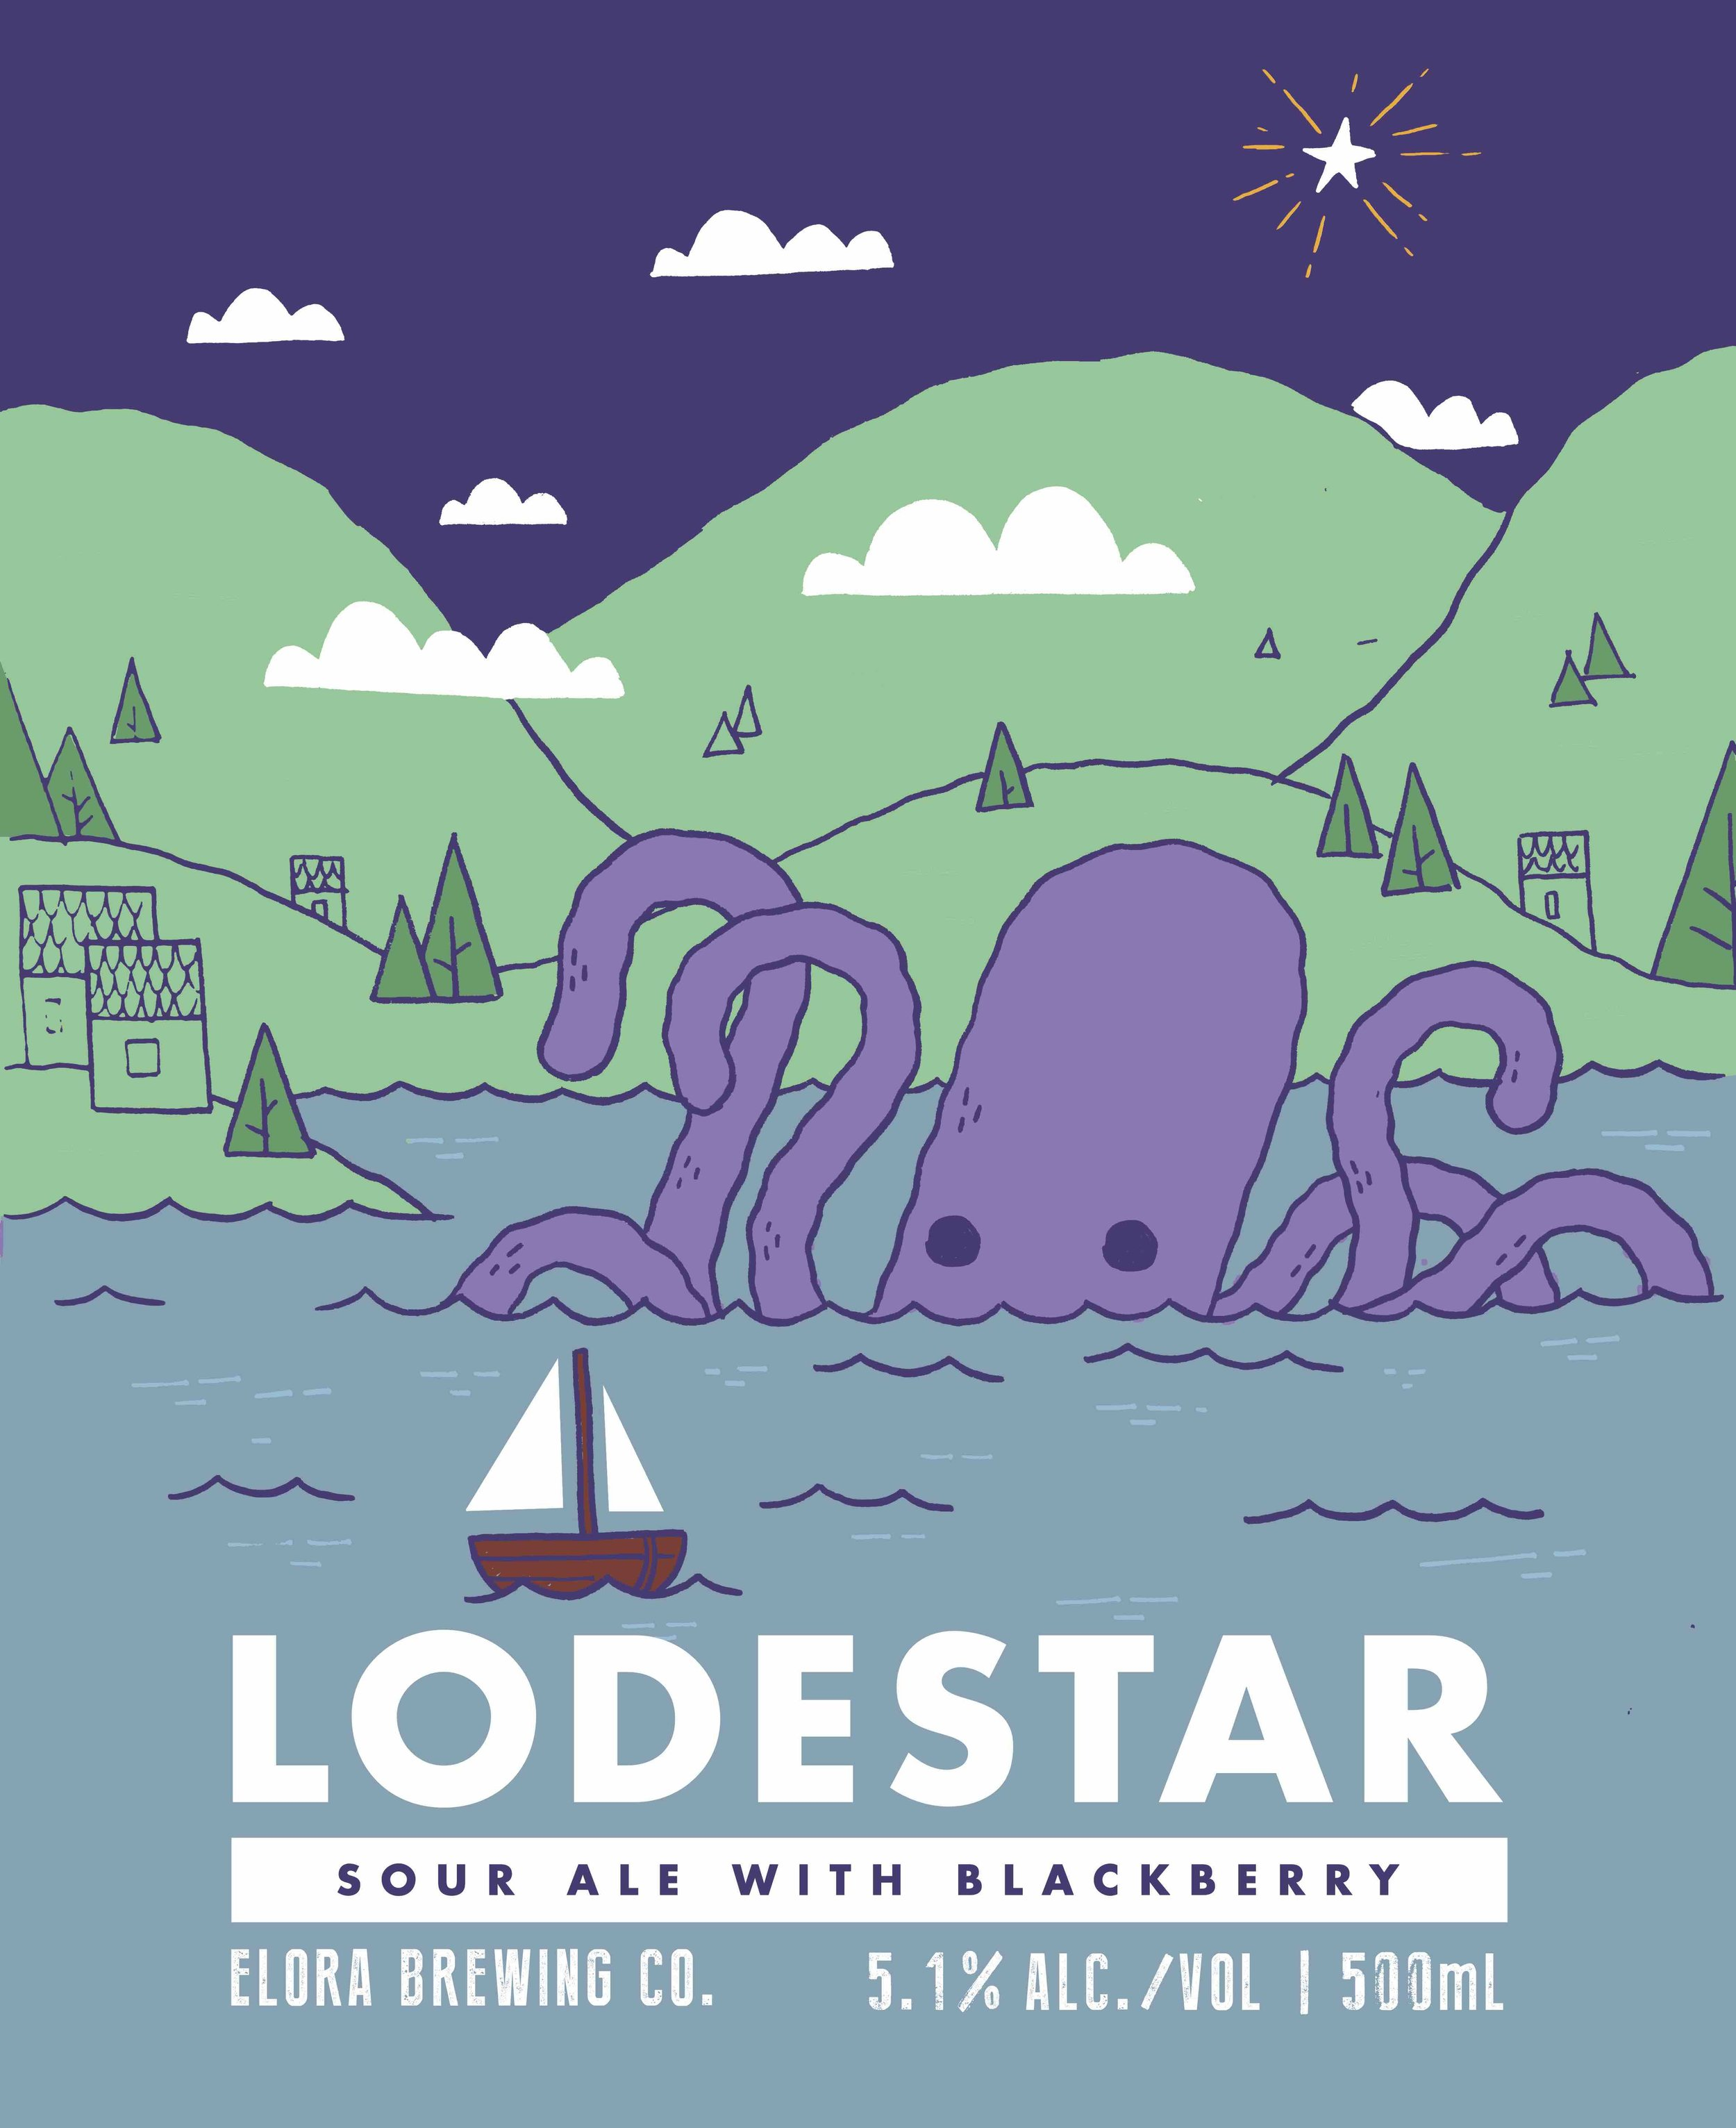 Lodestar-Blackberry.jpg